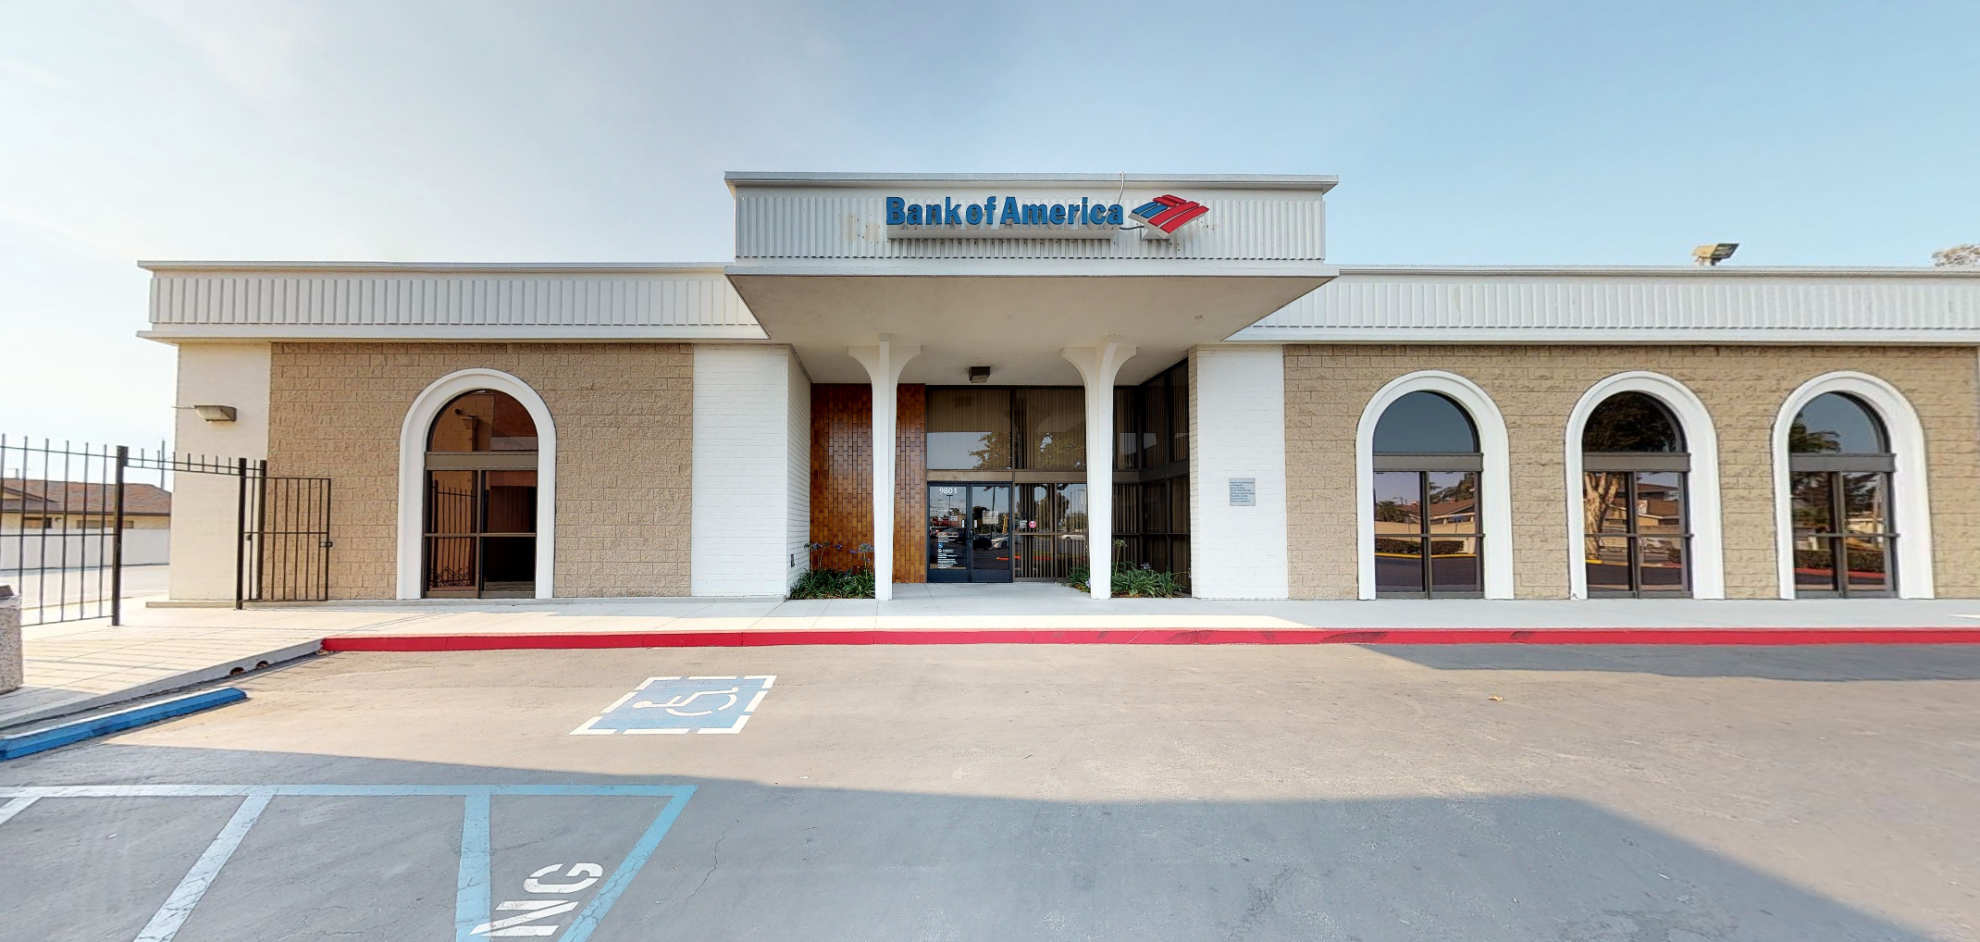 Bank of America financial center with drive-thru ATM | 9801 Walker St, Cypress, CA 90630